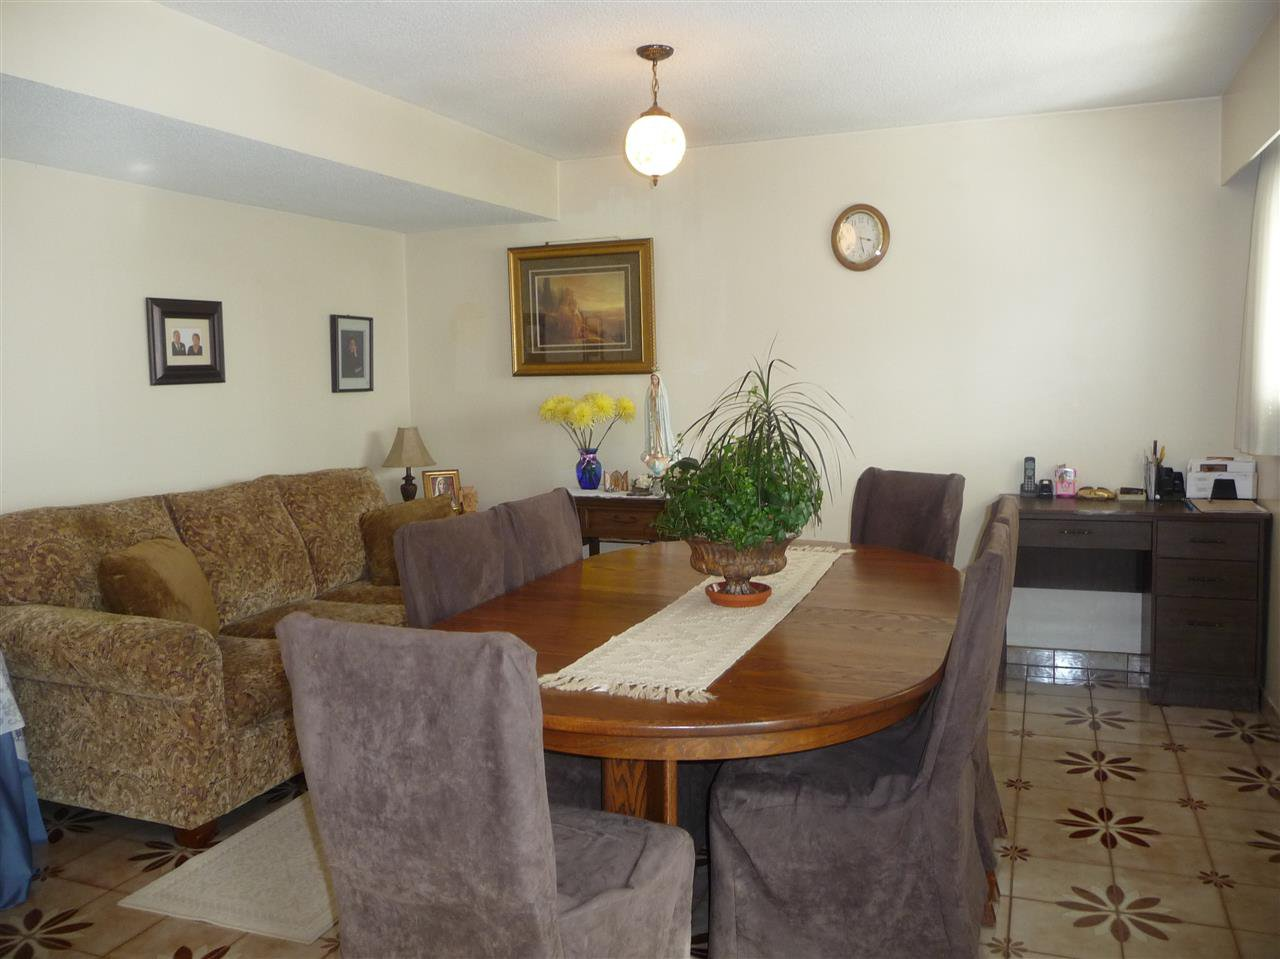 Photo 17: Photos: 7124 COLLISTER Drive in Burnaby: Government Road House for sale (Burnaby North)  : MLS®# R2048311